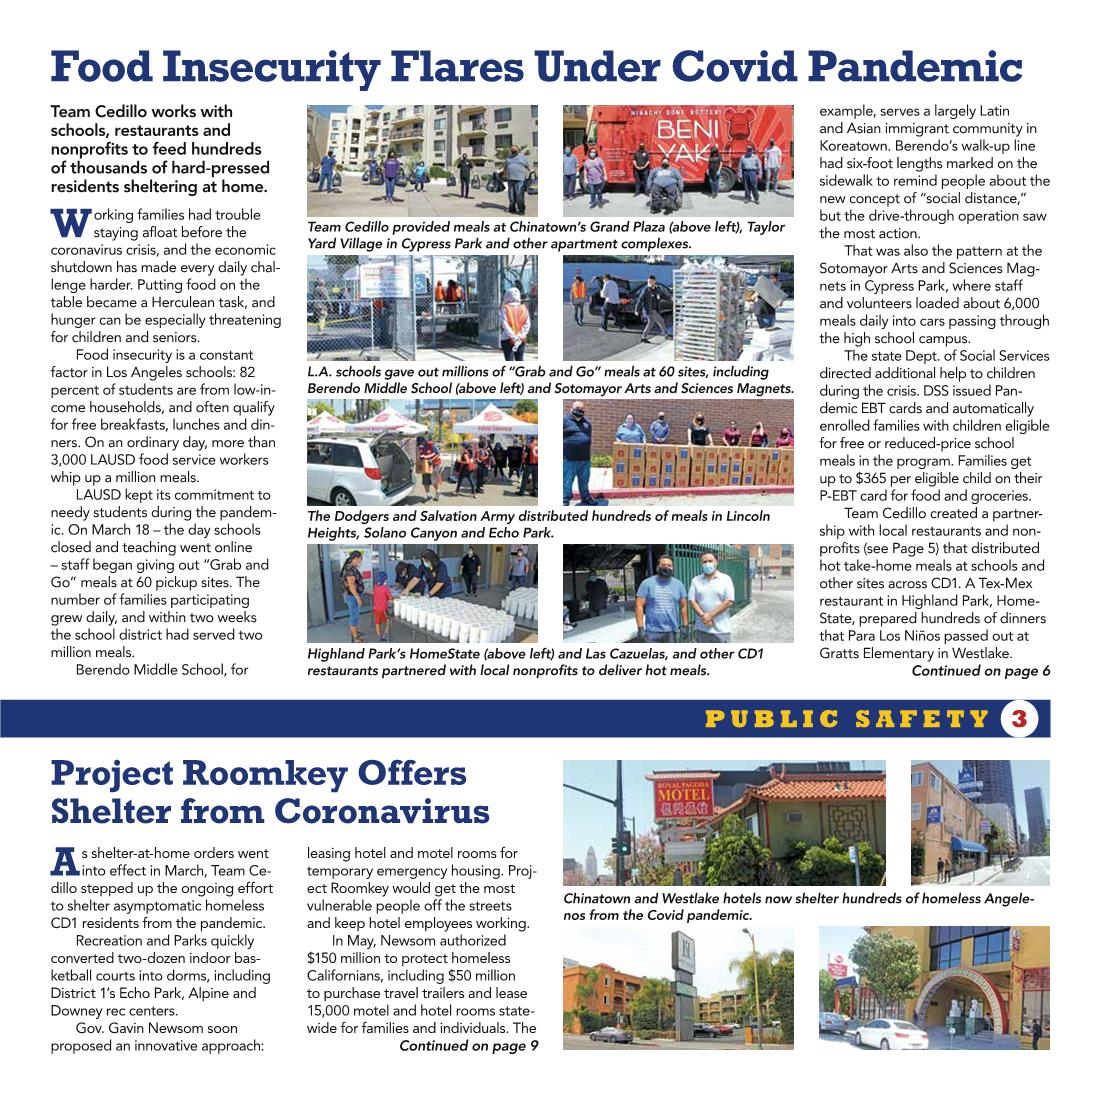 Food Insecurity 1